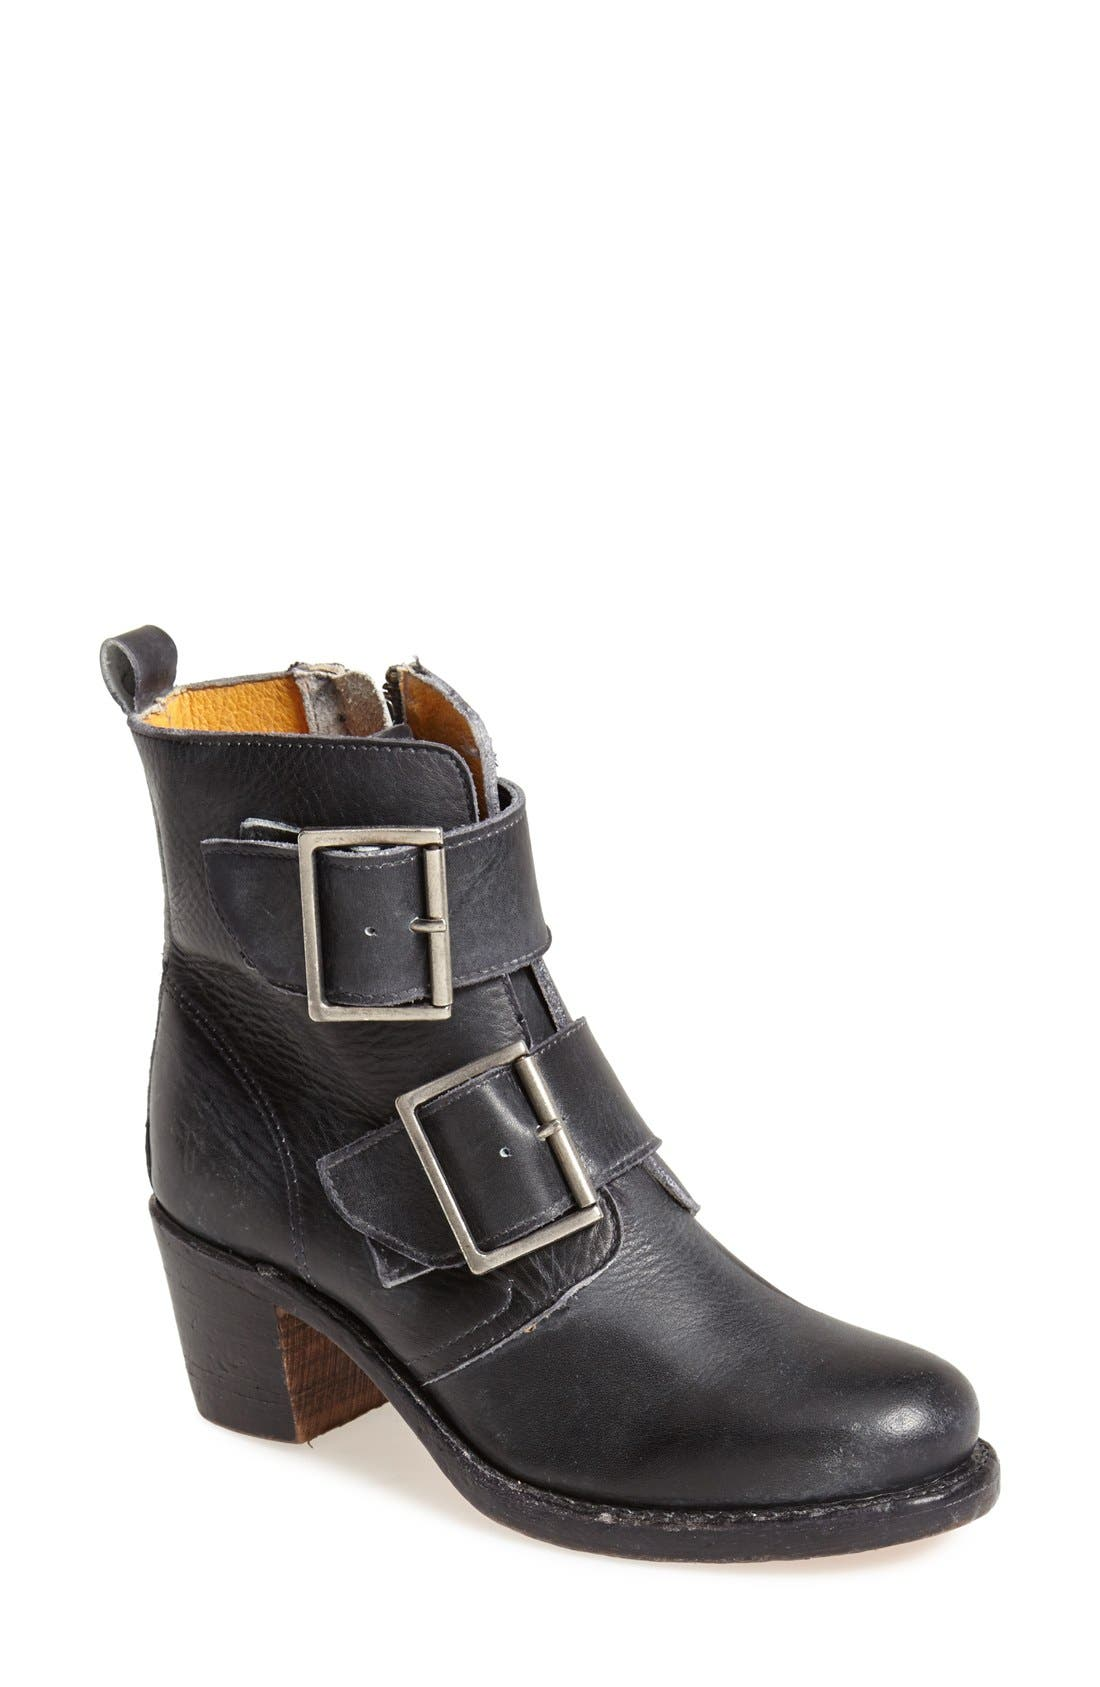 FRYE 'Sabrina' Double Buckle Bootie, Main, color, 001